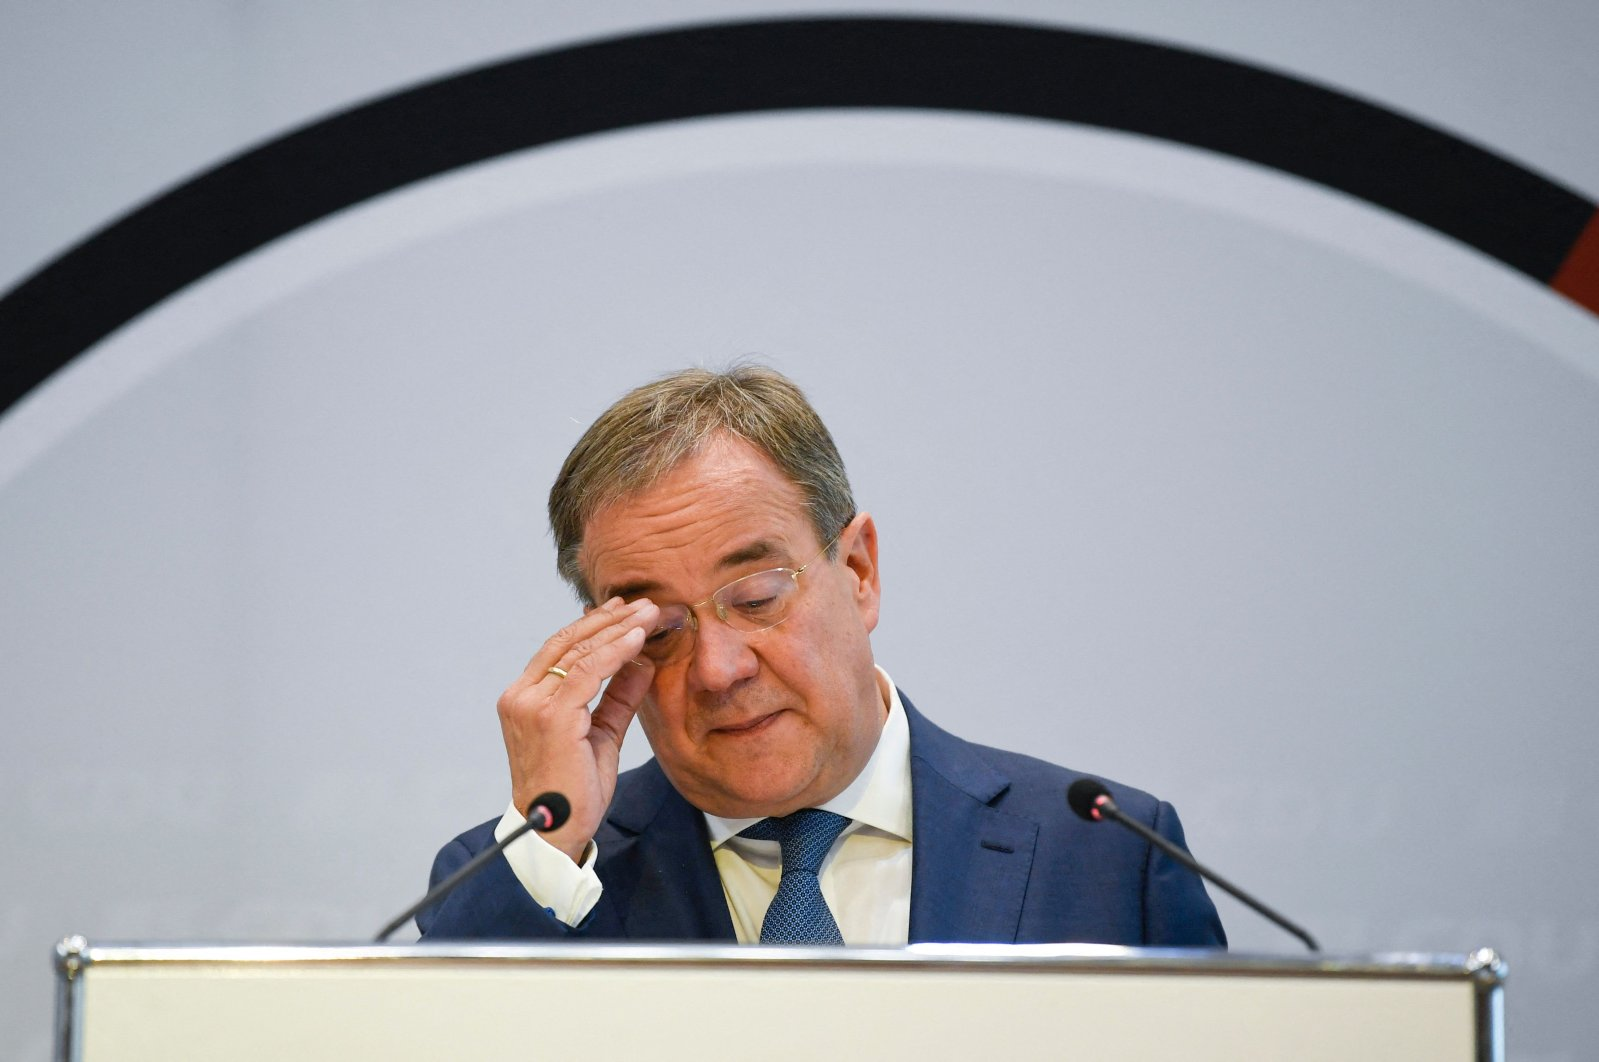 North Rhine-Westphalia's State Premier Armin Laschet, leader of the conservative Christian Democratic Union (CDU) and candidate for chancellor, fixes his glasses at a press conference in Stuttgart, southern Germany, Sept. 15, 2021. (AFP Photo)